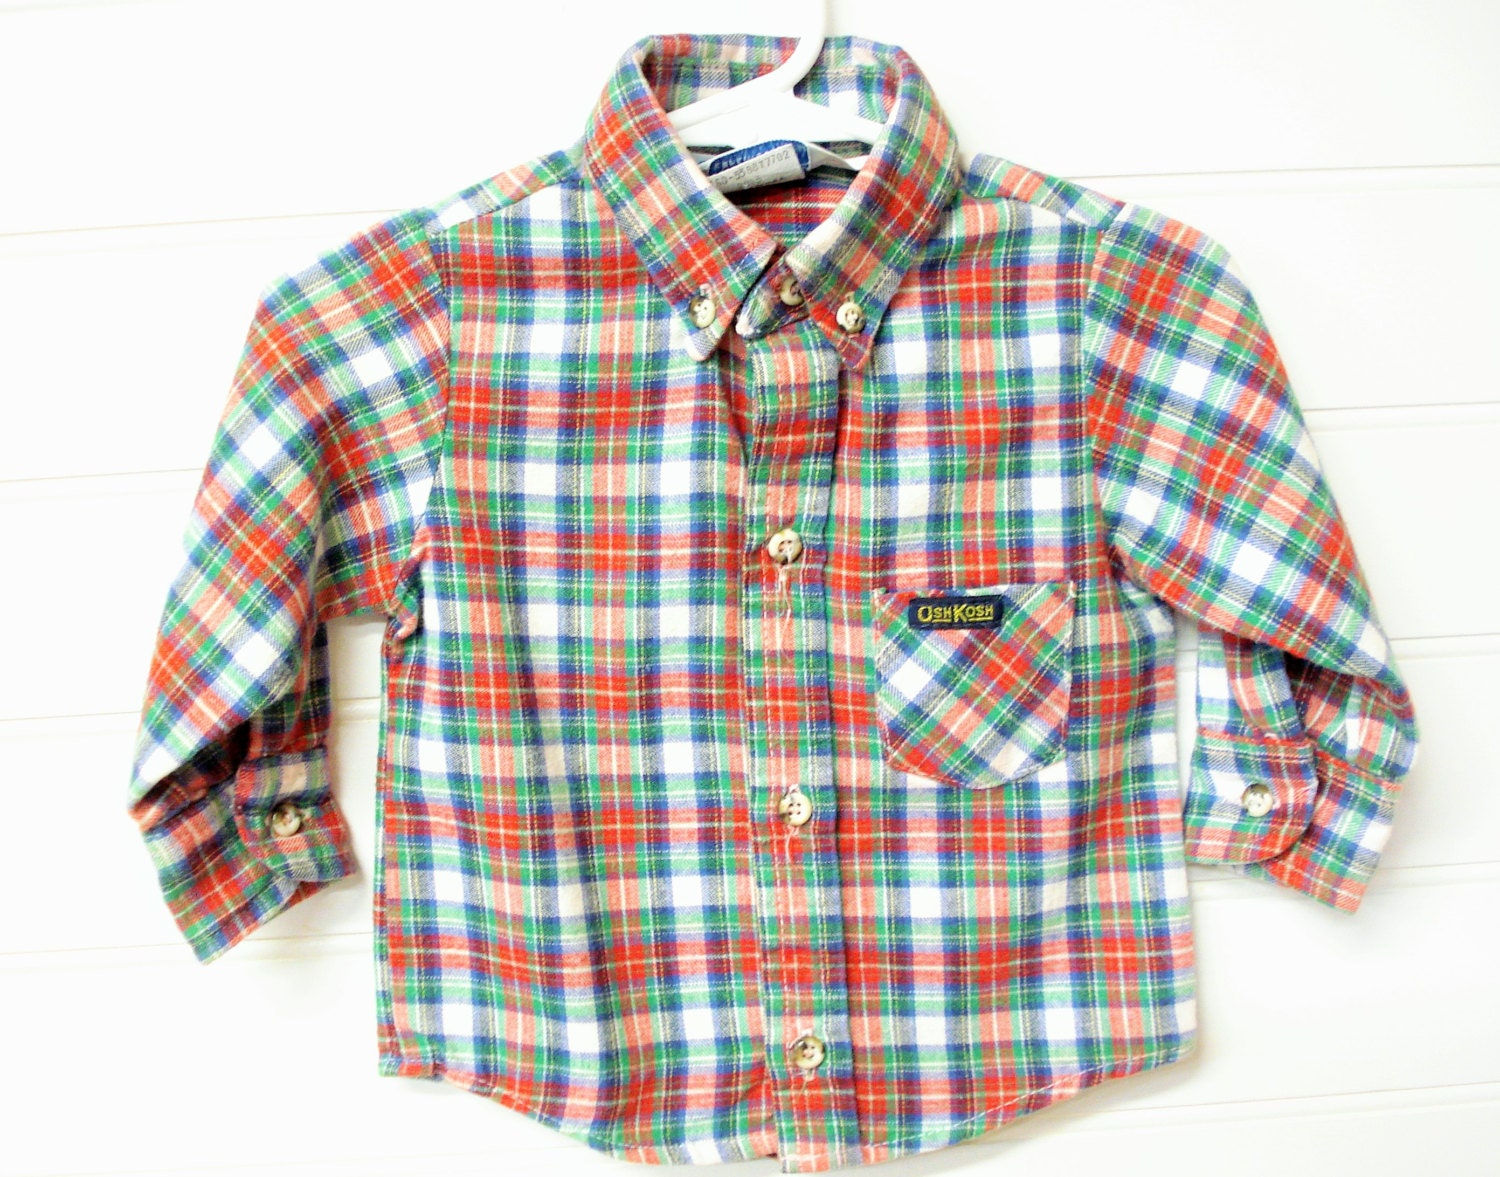 Vintage baby clothes baby boy flannel shirt red blue green